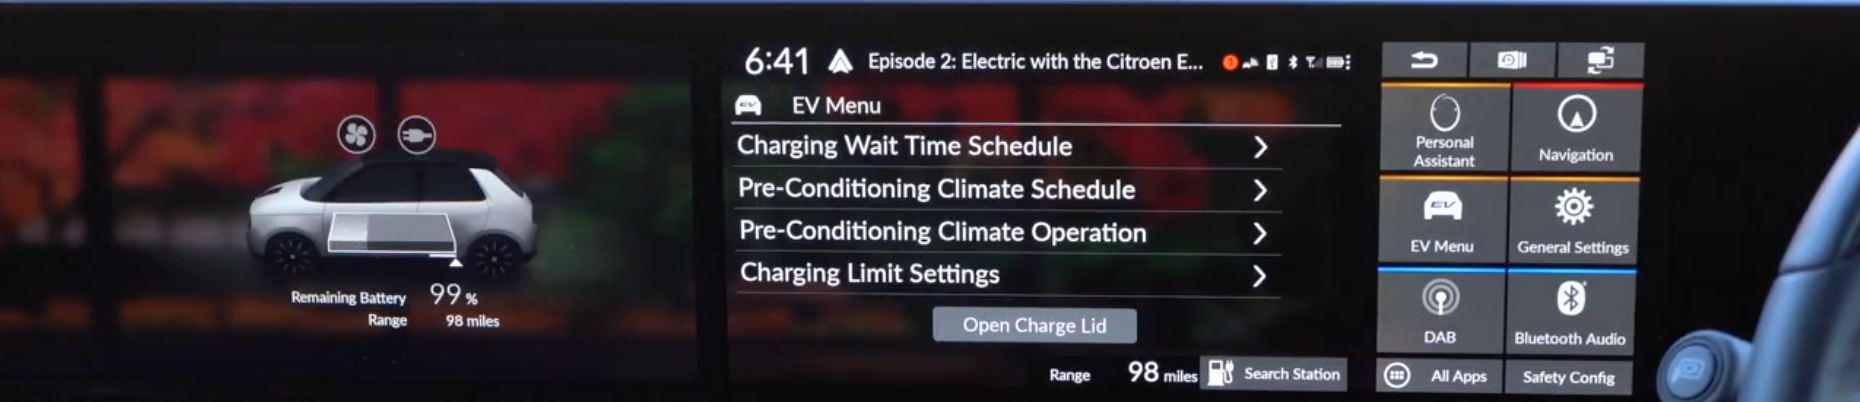 List of settings for the charging such as scheduling and charging limits